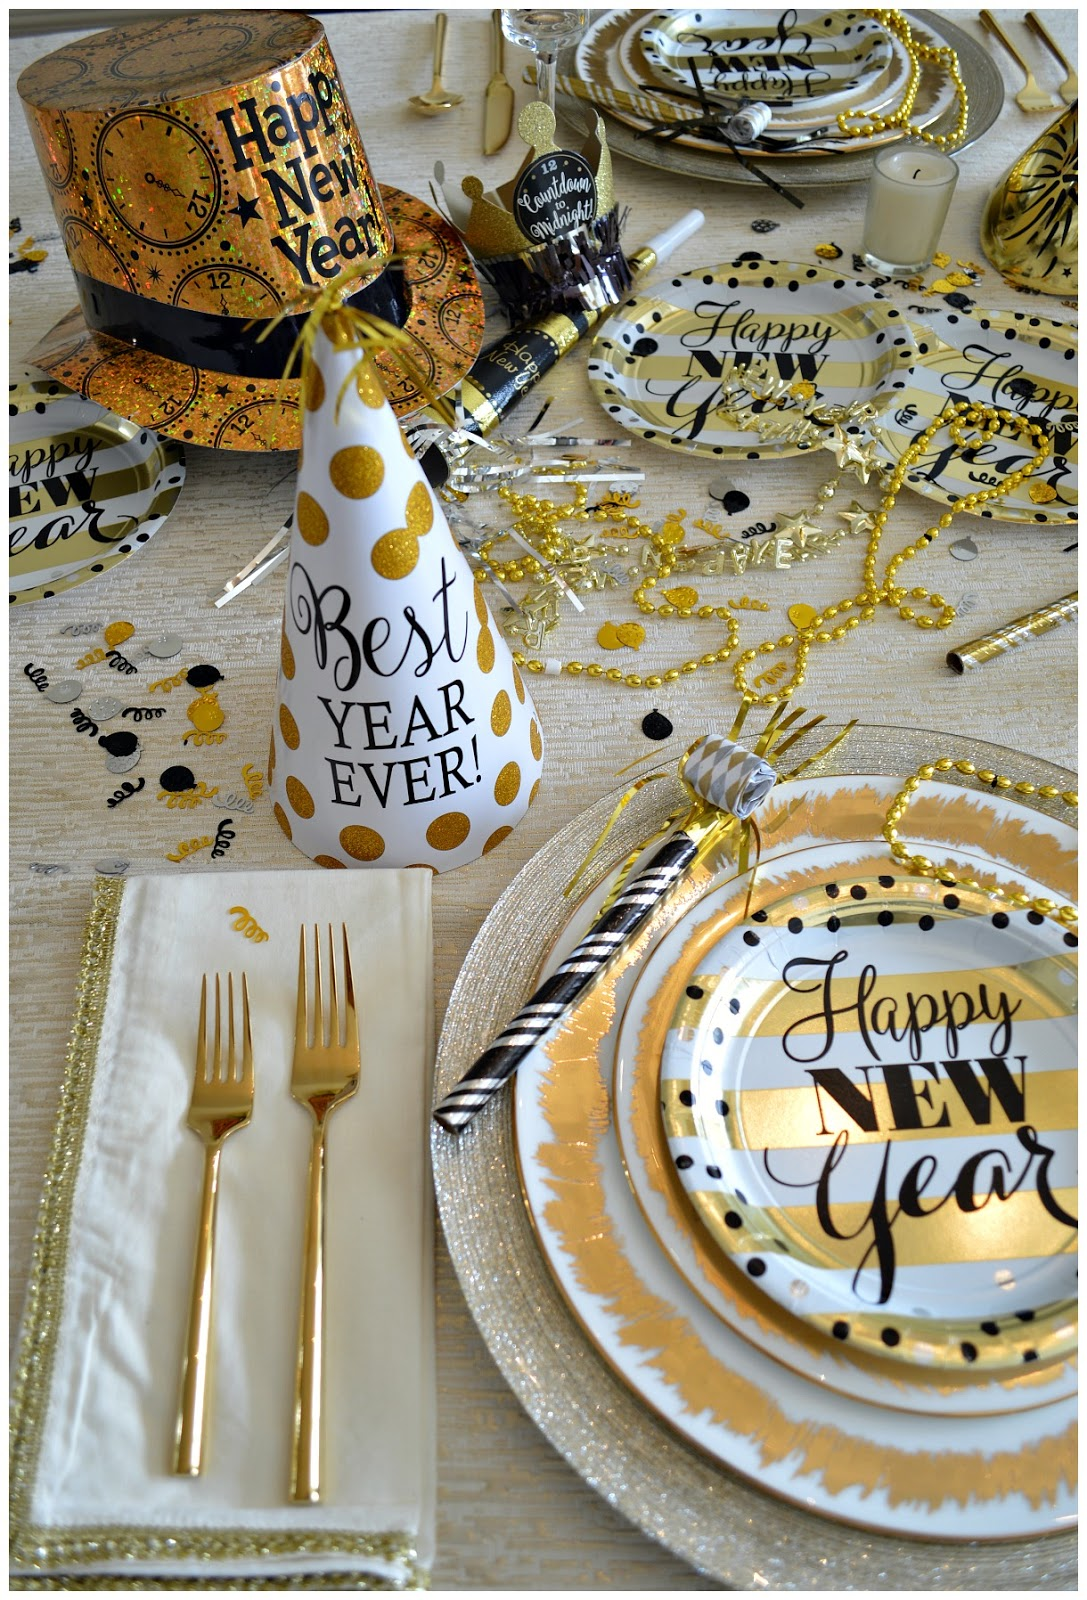 Happy New Year Our New Year S Eve Festive Table